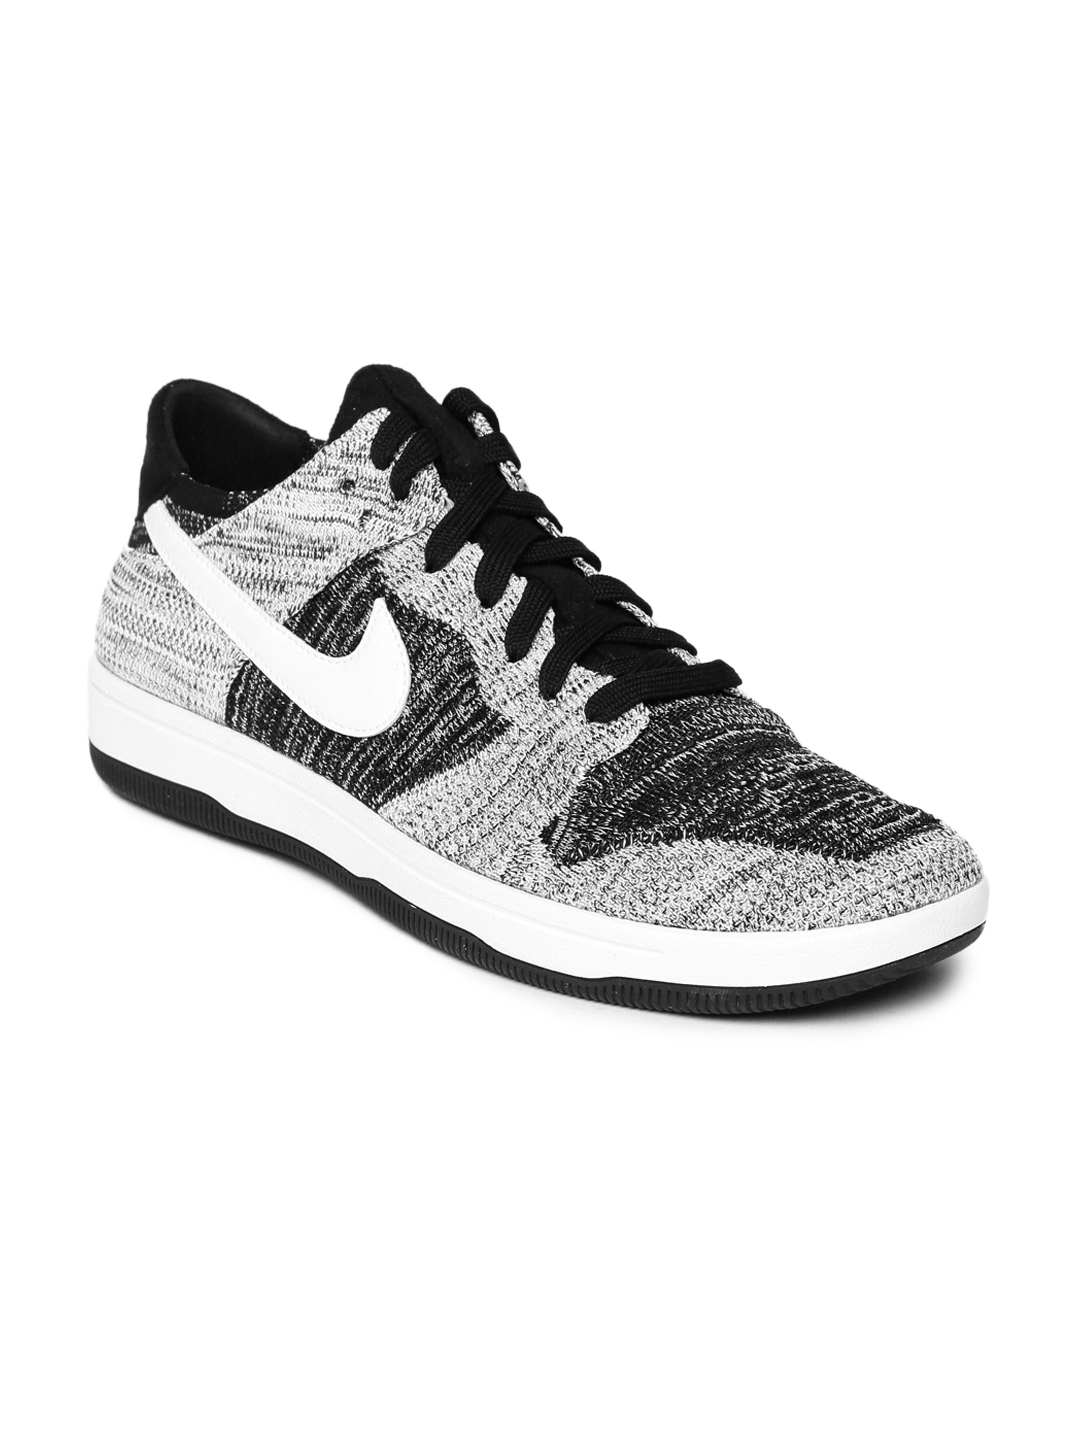 876aad54ecf5 Buy Nike Men Black   White Dunk Flyknit Sneakers - Casual Shoes for ...